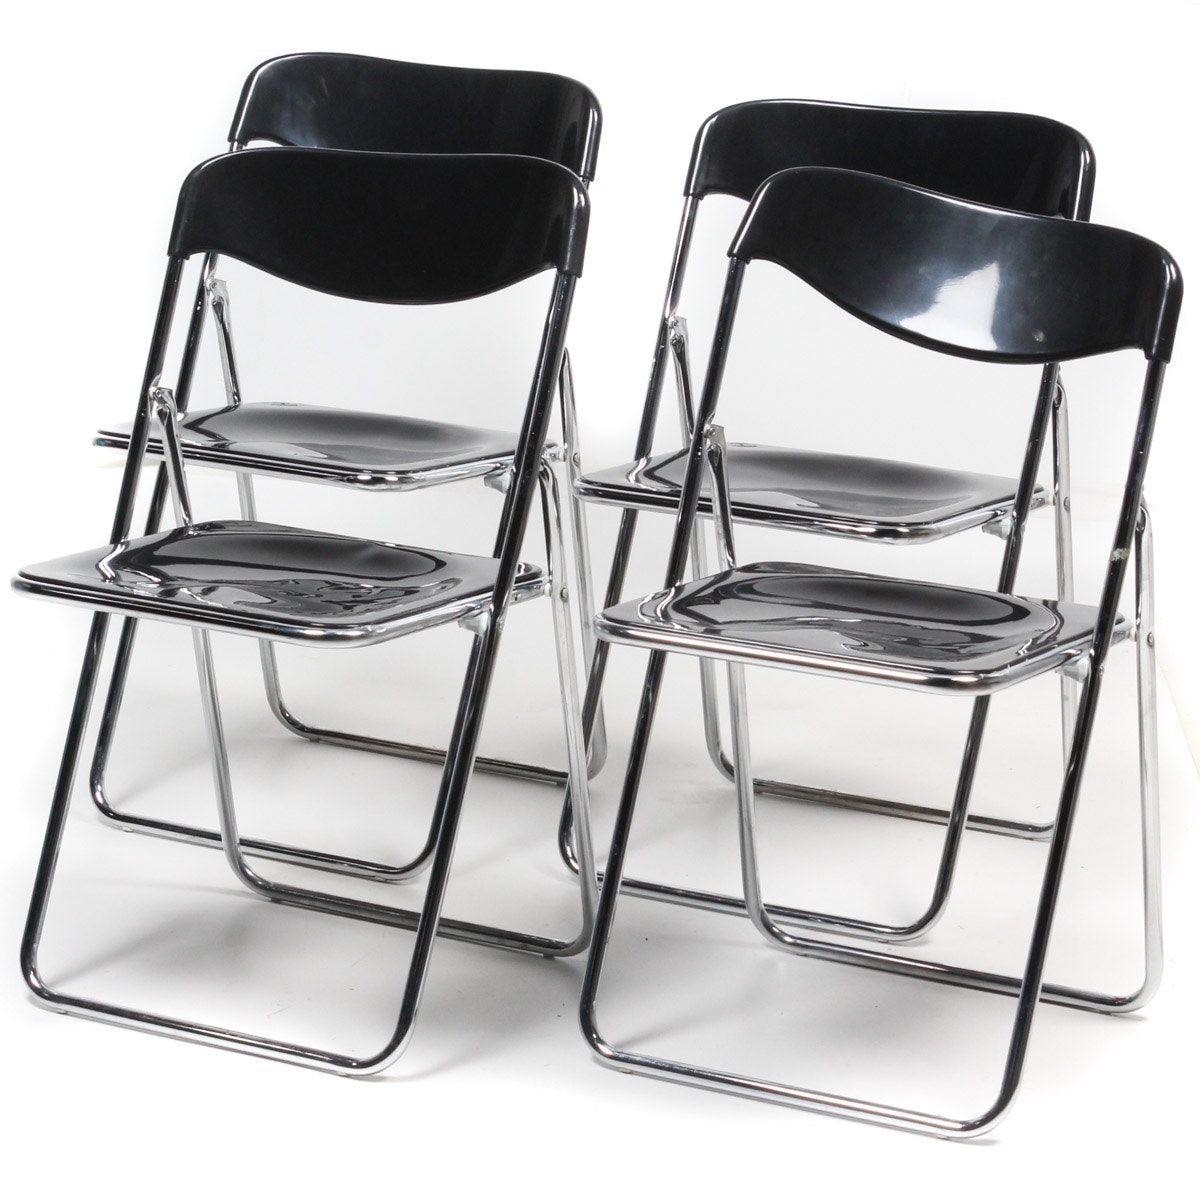 Set of Contemporary Folding Chairs ...  sc 1 st  EBTH.com & Set of Contemporary Folding Chairs : EBTH